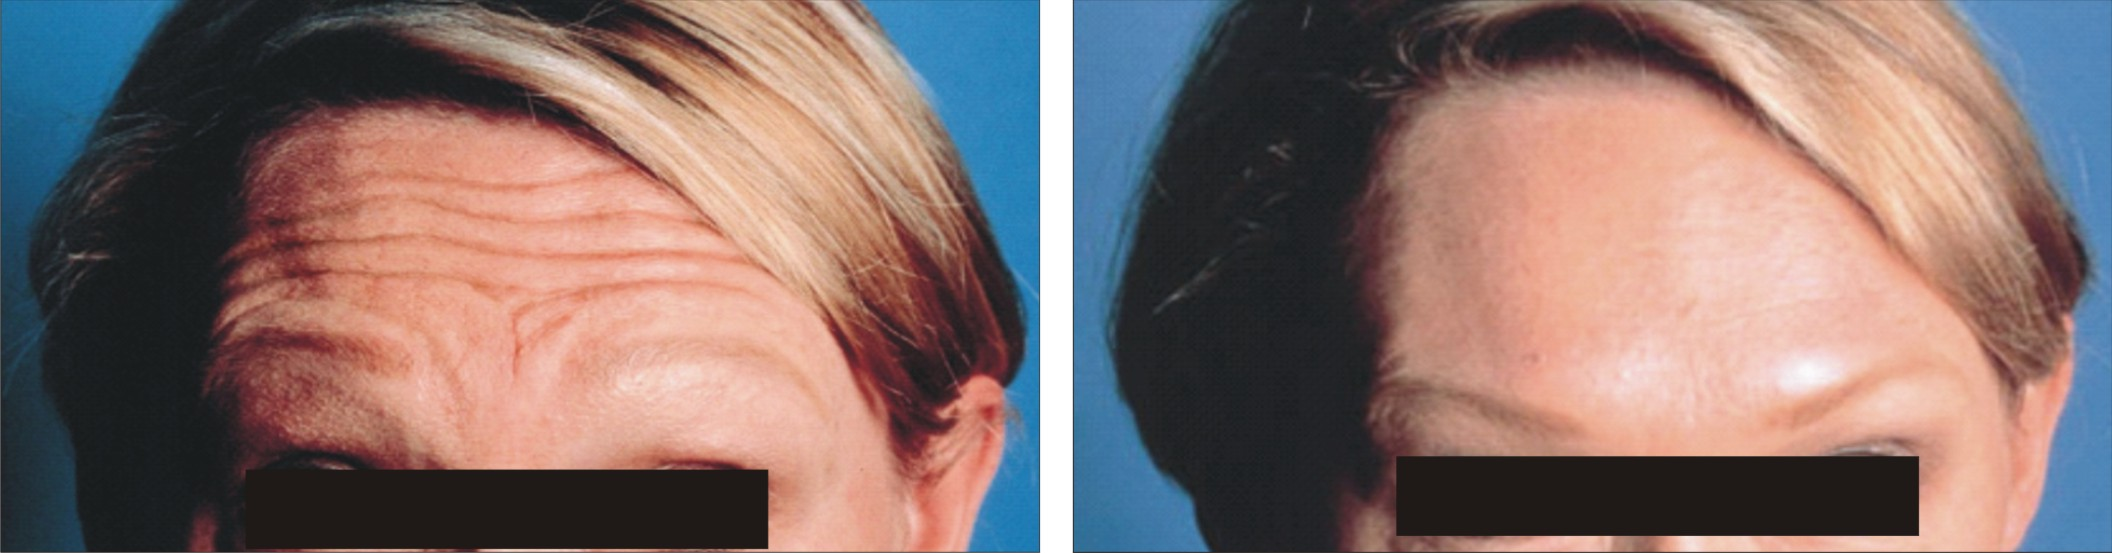 Anti Ageing Treatment Image Two